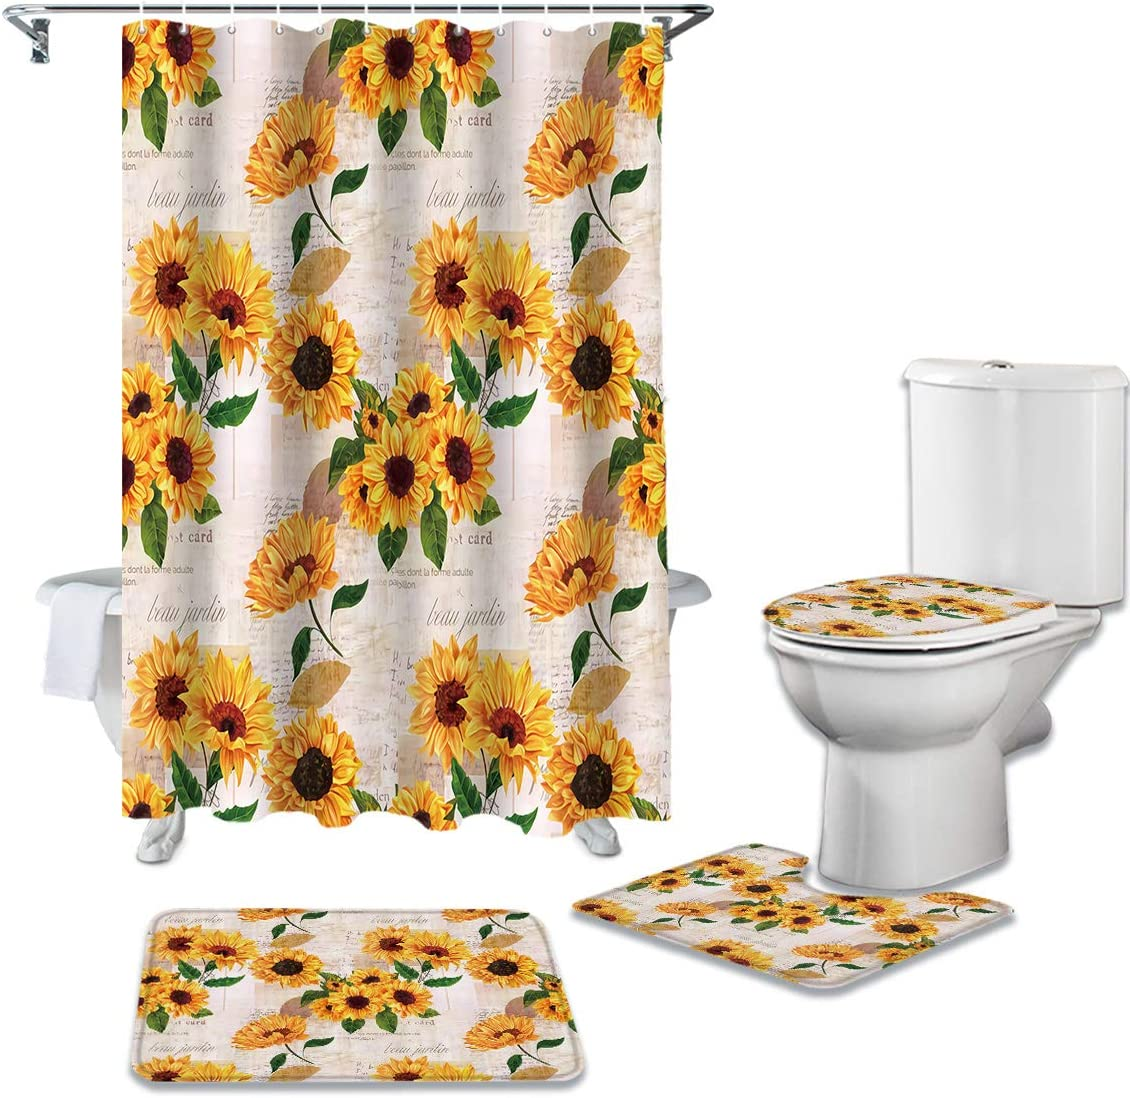 Recommendation CHARMHOME 4 Piece Shower Curtain Sets Non-Slip Toilet Rug with Max 51% OFF